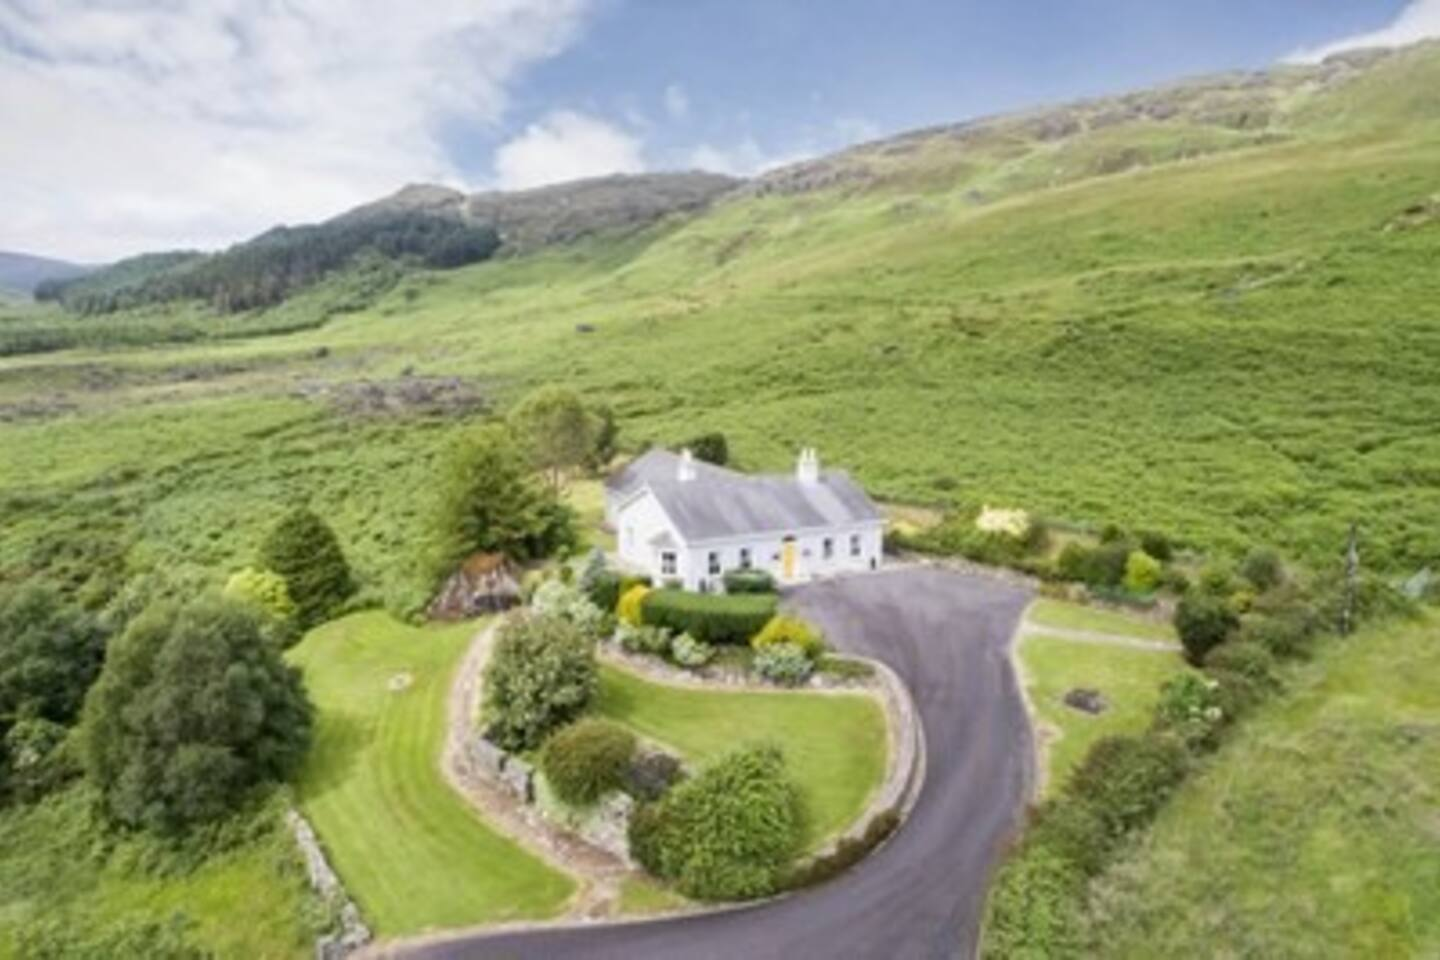 Aerial view of our house and gardens. The wild and beautiful Cooley mountains are in the background.